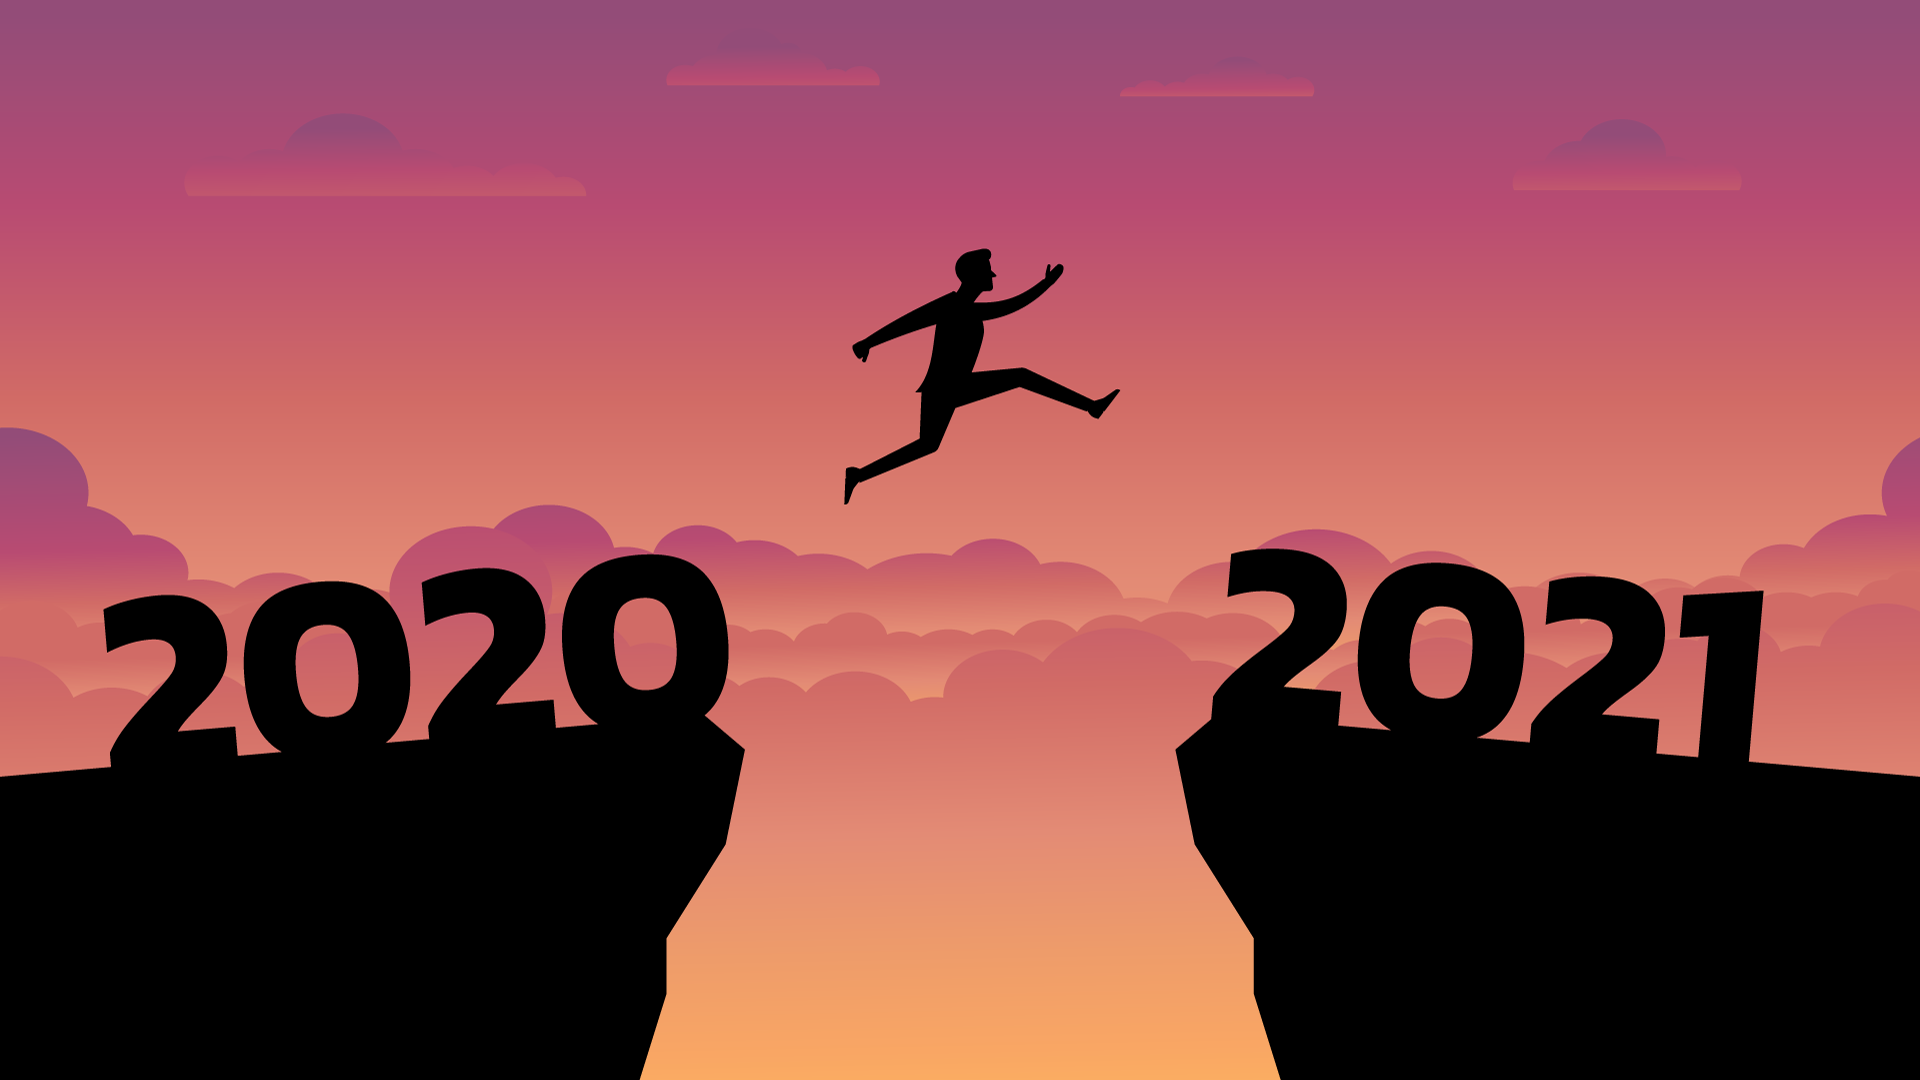 B2B Marketing Trends and Challenges for 2021